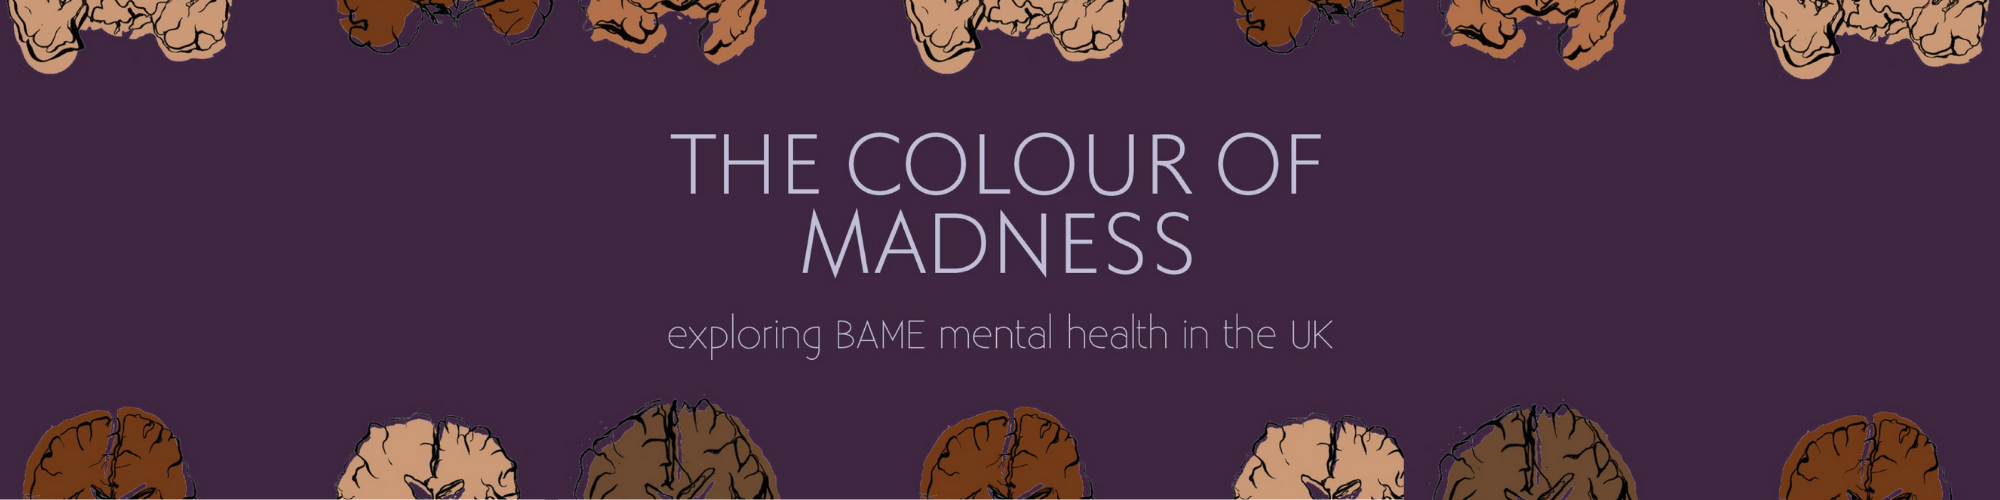 The Colour of Madness: Discussing Black Mental Health in a University Context with Rianna Walcott